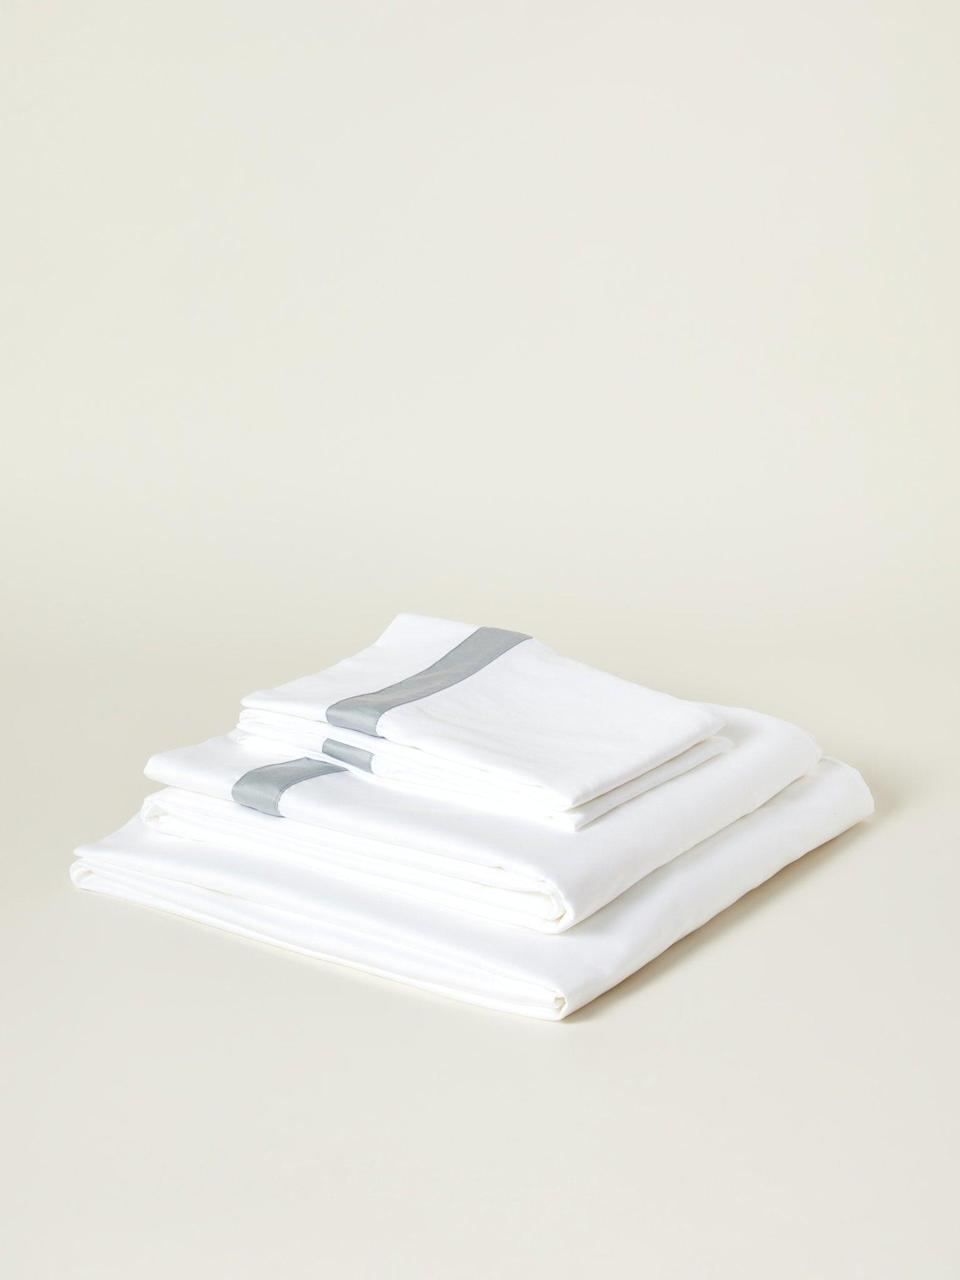 """<h2>Boll & Branch</h2><br>When we hear Boll & Branch, we think organic cotton, high thread counts, and bedding bliss. Check out all kinds of classics (Percale white sheet sets, cotton duvet covers, pillowcases, etc.) up to 30% off. <br><br><em>Shop</em> <strong><em><a href=""""https://www.verishop.com/brand/boll-branch"""" rel=""""nofollow noopener"""" target=""""_blank"""" data-ylk=""""slk:Boll & Branch"""" class=""""link rapid-noclick-resp"""">Boll & Branch</a></em></strong><br><br><strong>Boll & Branch</strong> Banded Organic Cotton Sheet Set, $, available at <a href=""""https://go.skimresources.com/?id=30283X879131&url=https%3A%2F%2Fshop-links.co%2F1735354048353795448"""" rel=""""nofollow noopener"""" target=""""_blank"""" data-ylk=""""slk:Verishop"""" class=""""link rapid-noclick-resp"""">Verishop</a>"""